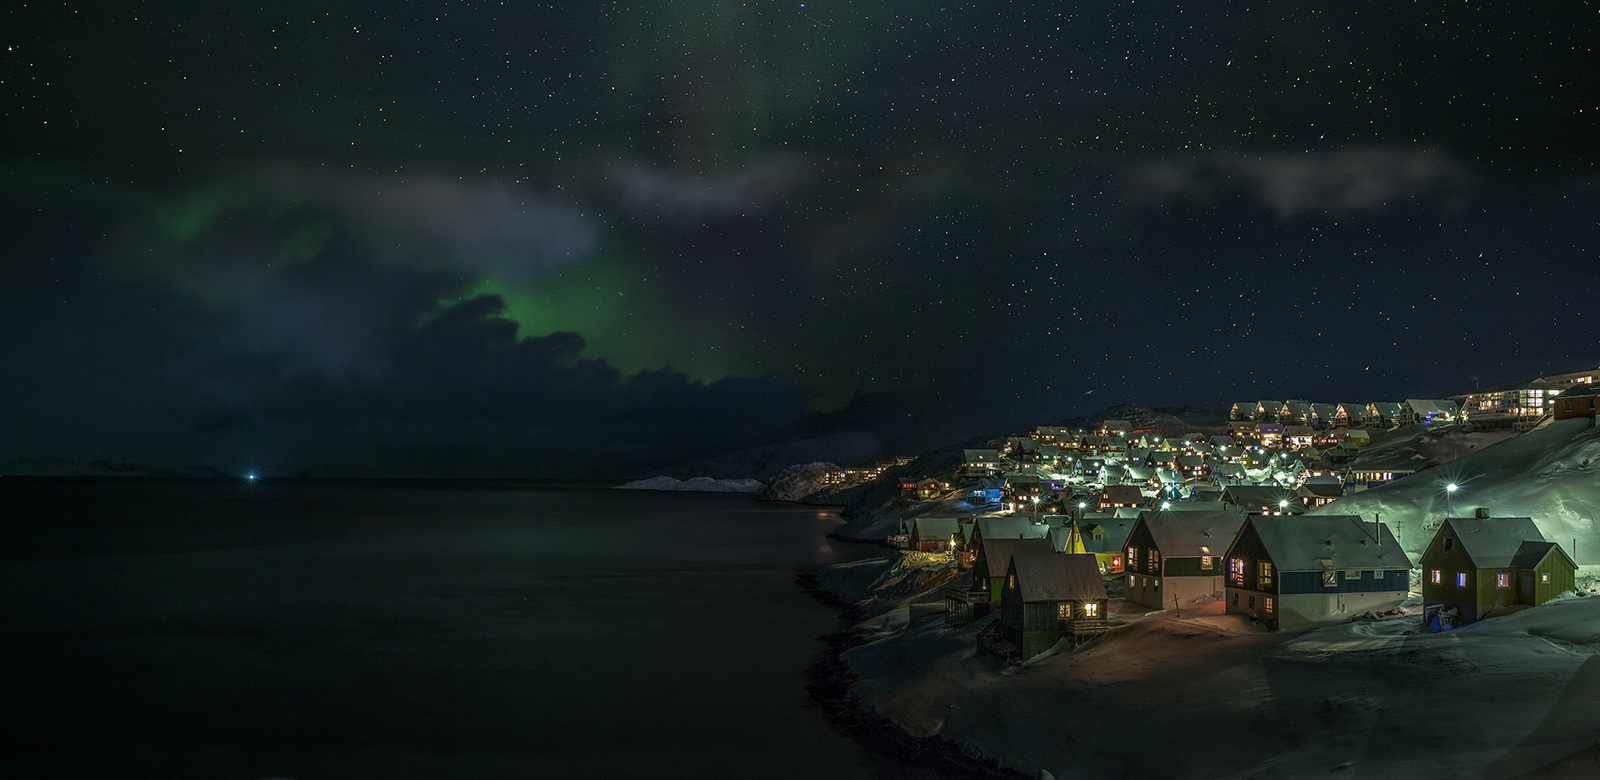 Nuuk in Greenland - places to visit in the world